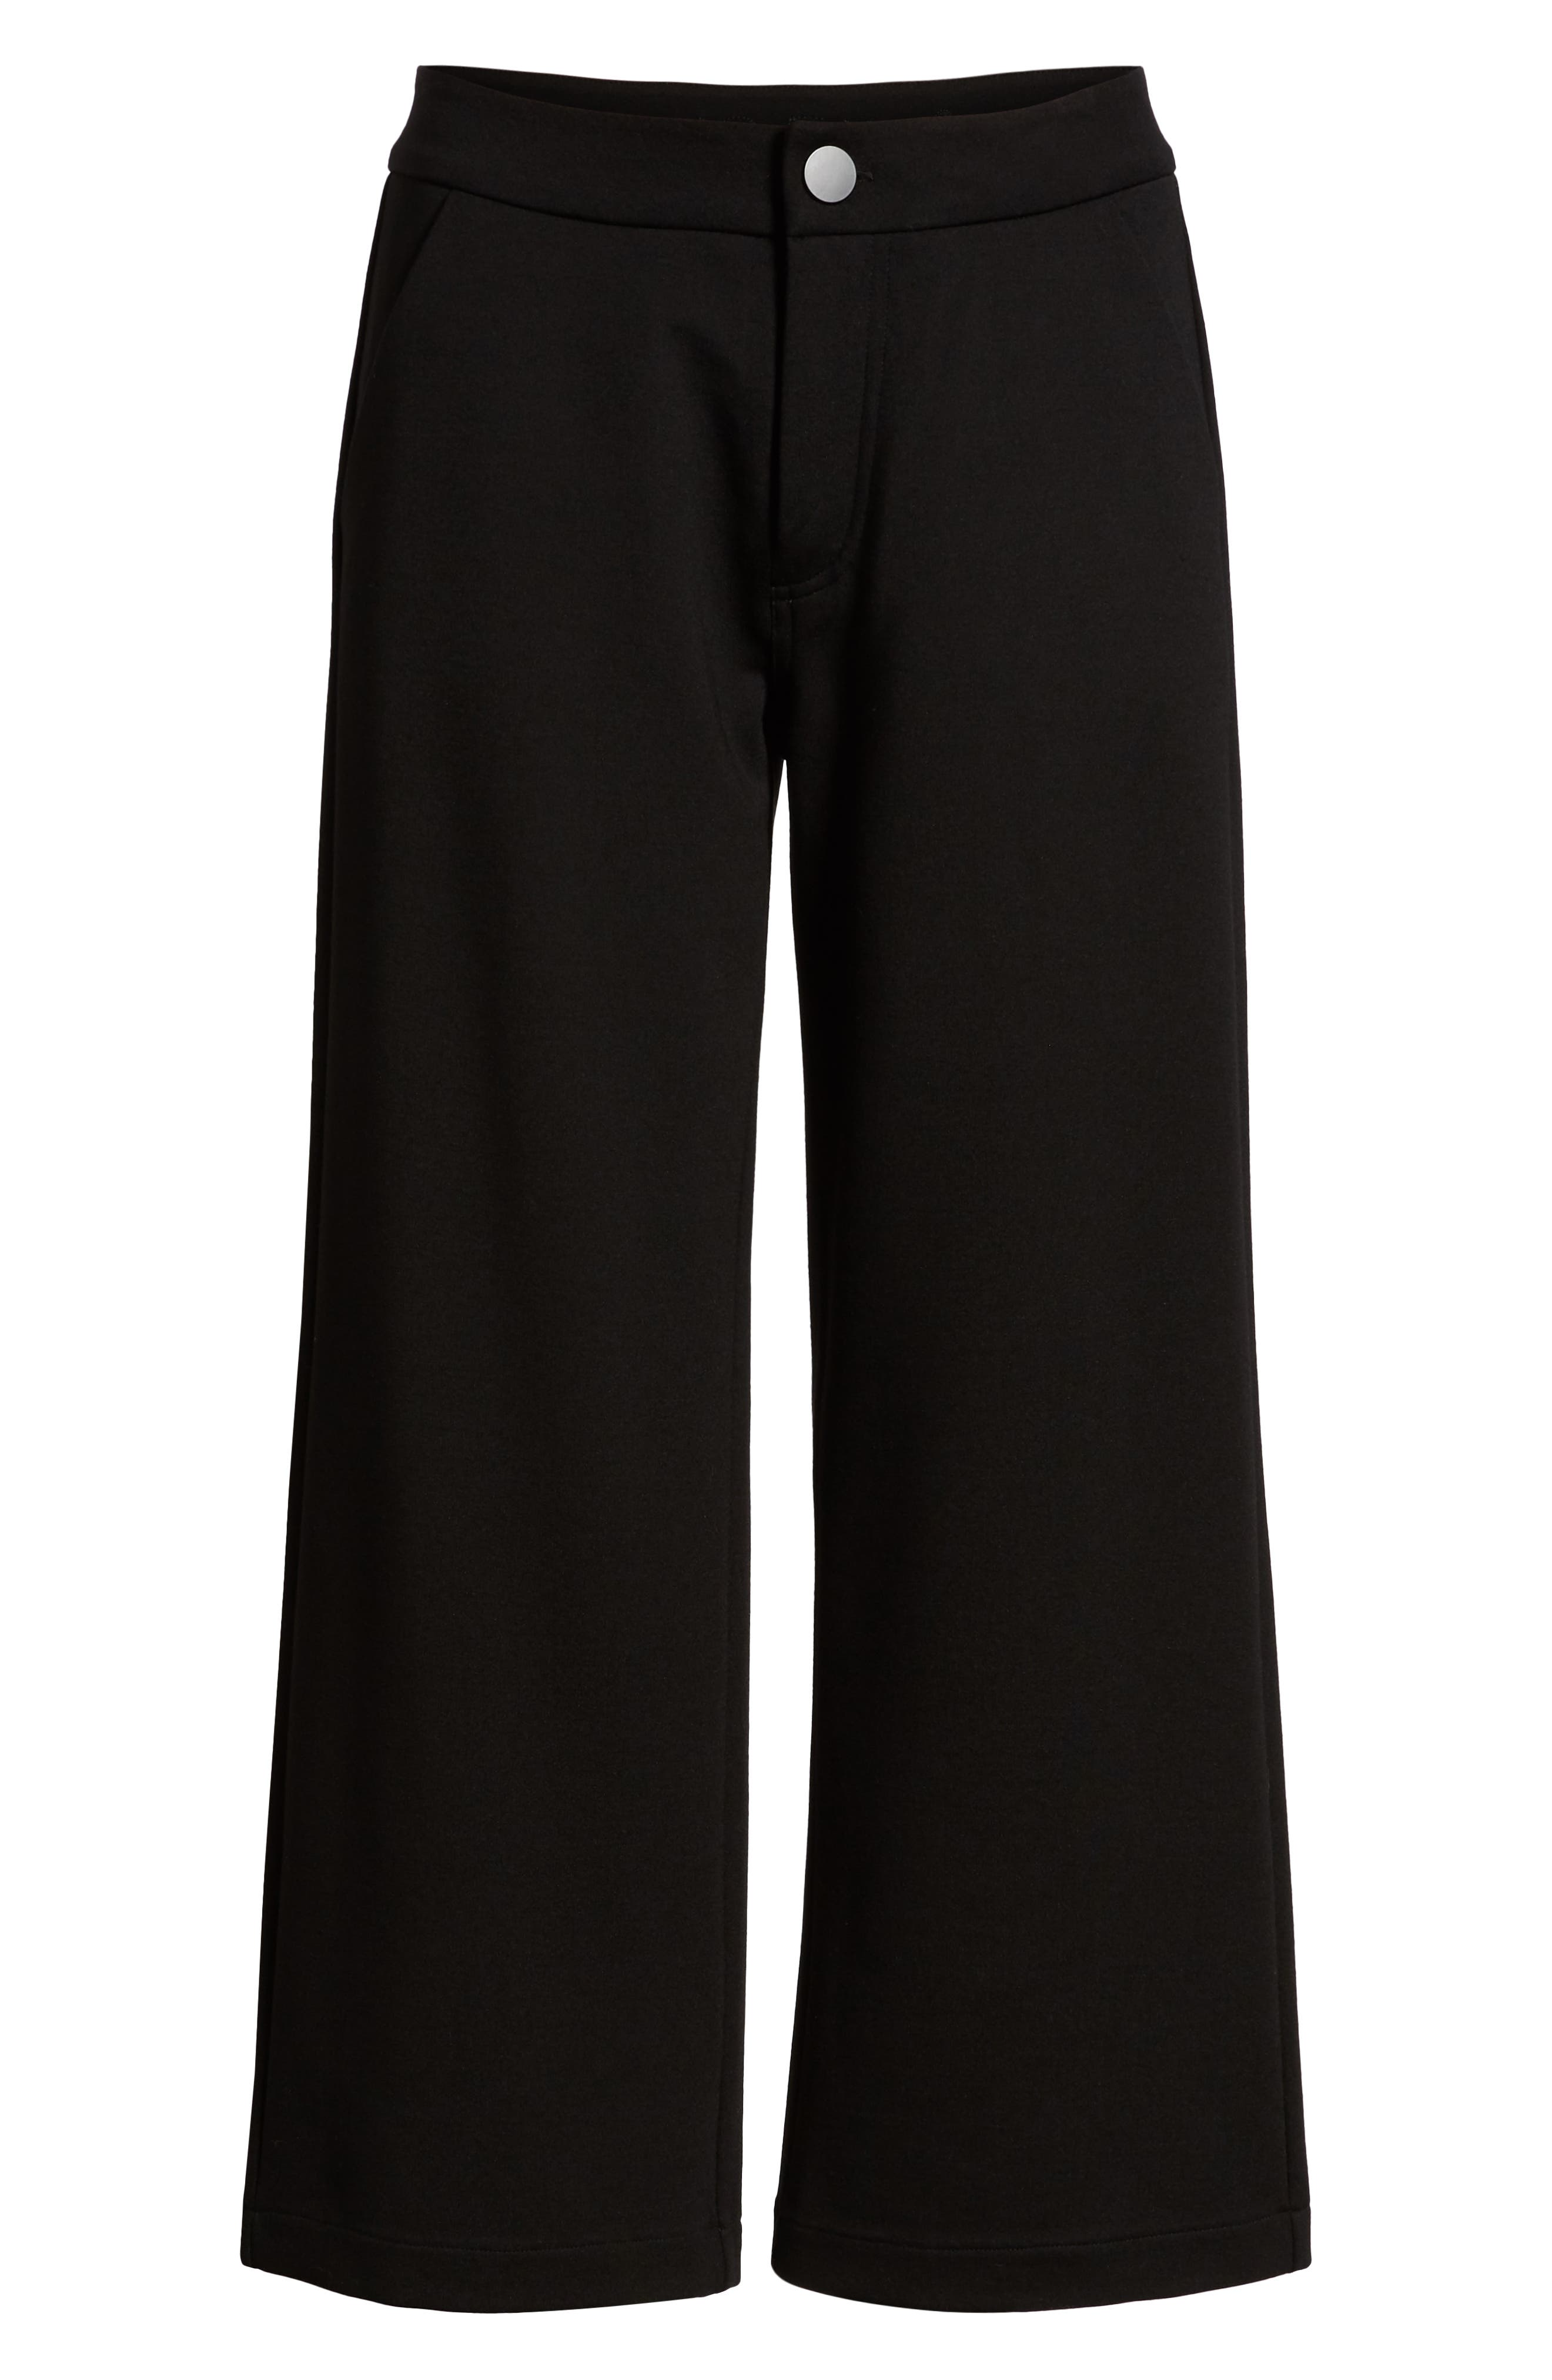 Blair Crop Wide Leg Ponte Pants,                             Alternate thumbnail 6, color,                             BLACK